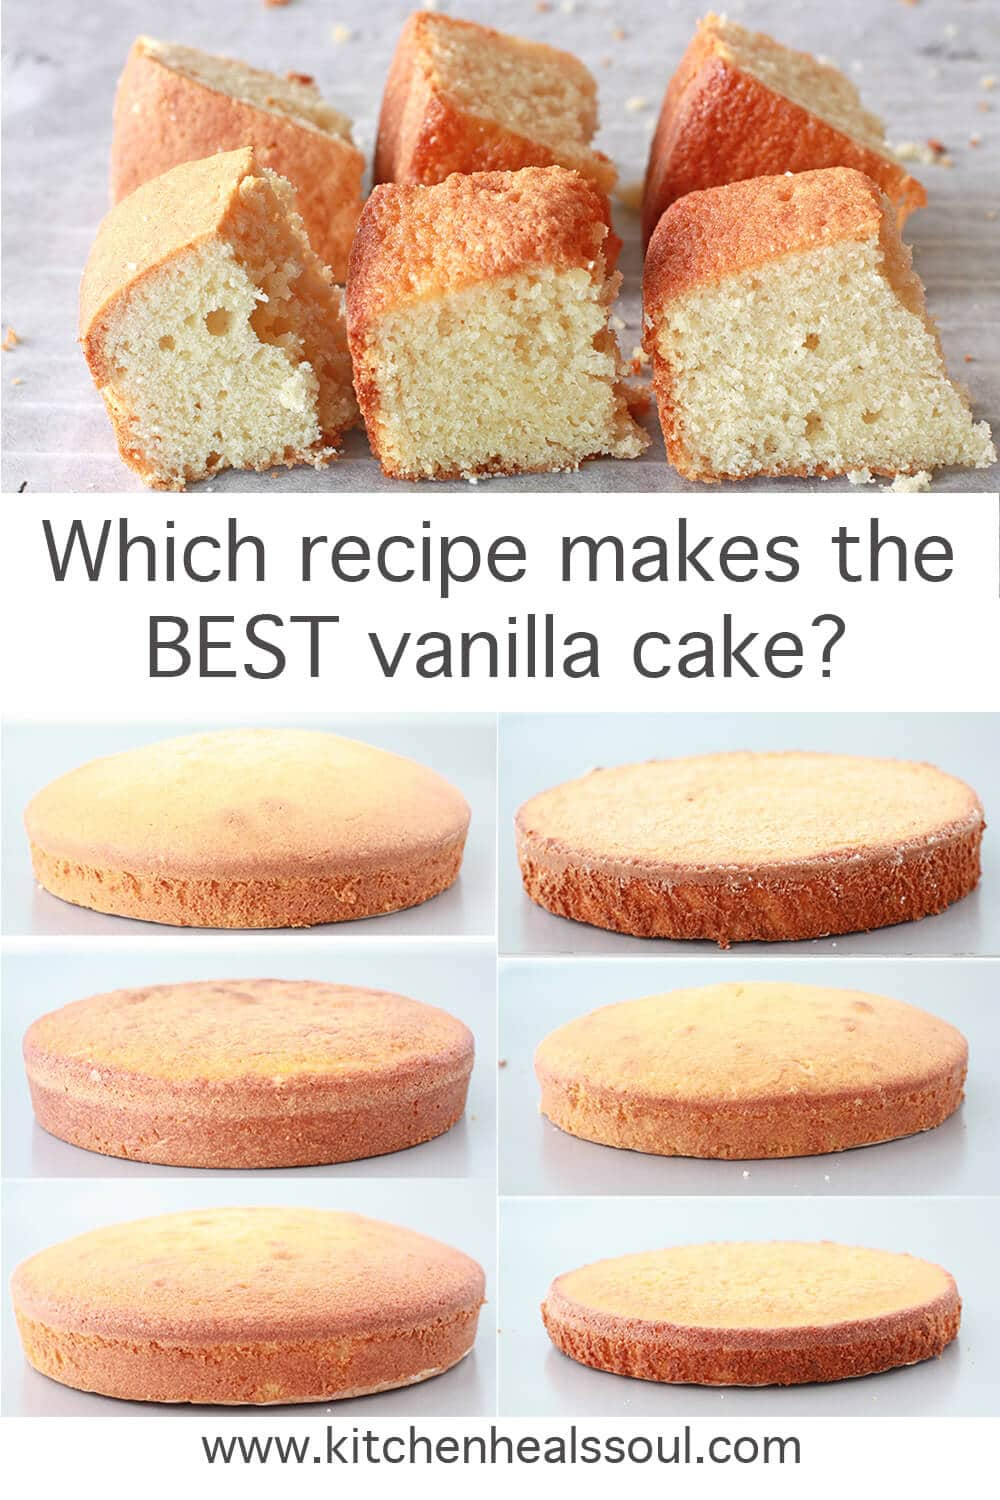 A comparison of 6 vanilla cakes side by side, full cakes and cut pieces to show interior